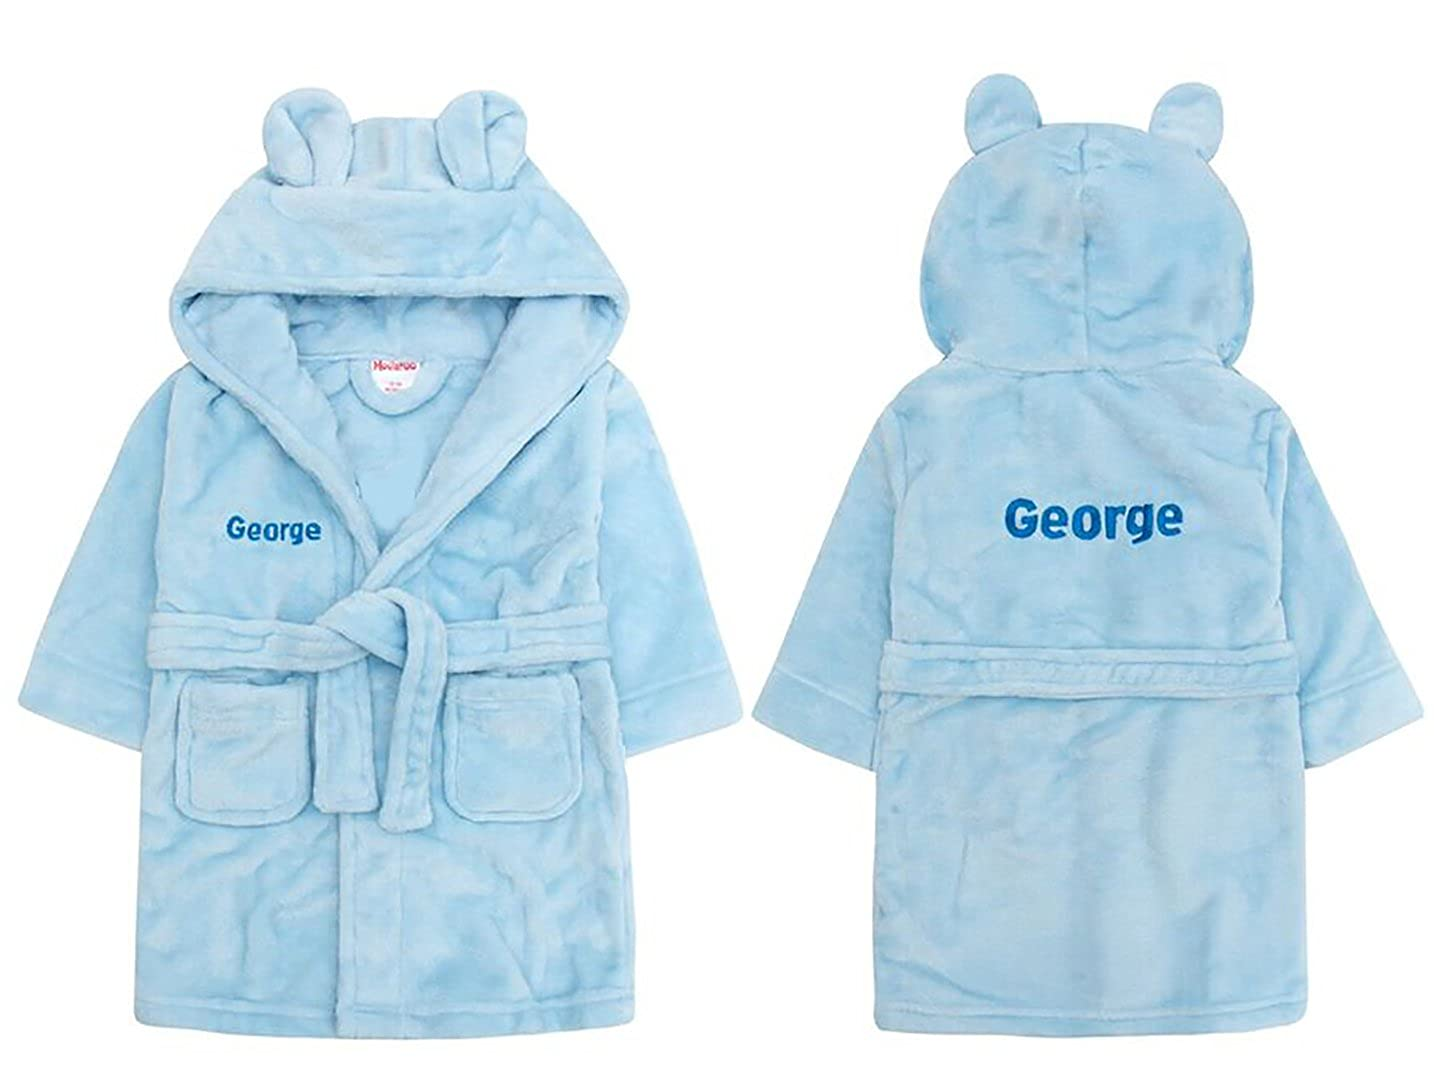 Embroidered Personalised Soft Baby Blue Dressing Gown Bath Robe with Teddy EARS 6 Months-5 Years